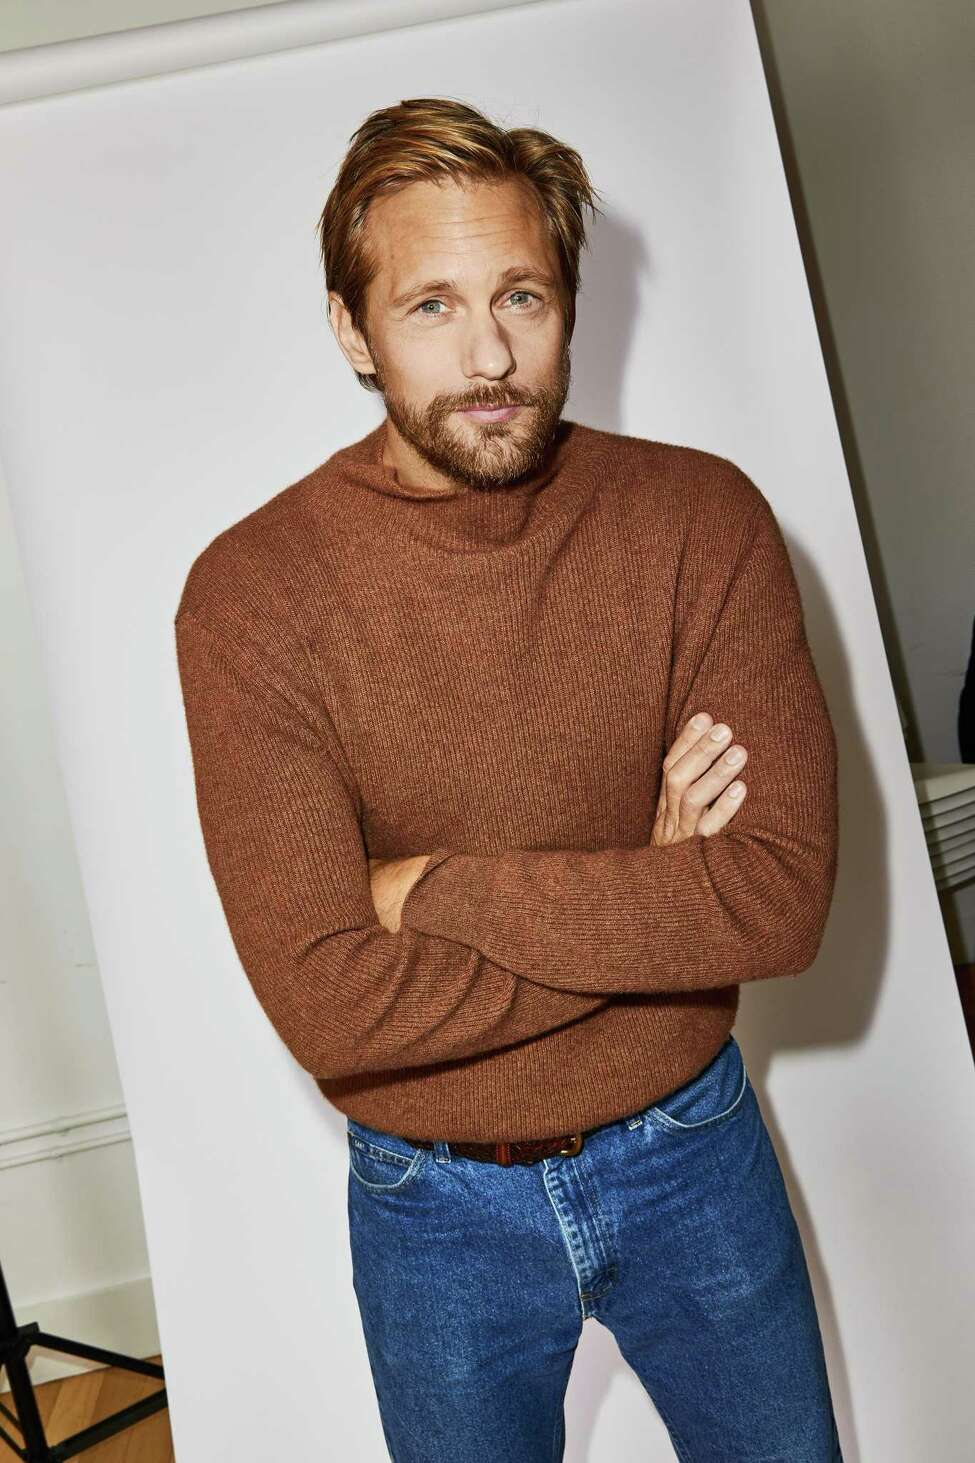 -- PHOTO MOVED IN ADVANCE AND NOT FOR USE - ONLINE OR IN PRINT - BEFORE OCT. 20, 2019. -- The actor Alexander Skarsgard in New York on Oct. 8, 2019. Skarsgard talks about his latest turn as a compelling sociopath in a€œThe Kill Teama€ and his Emmy-winning role in a€œBig Little Lies.a€ (Aaron Richter/The New York Times)